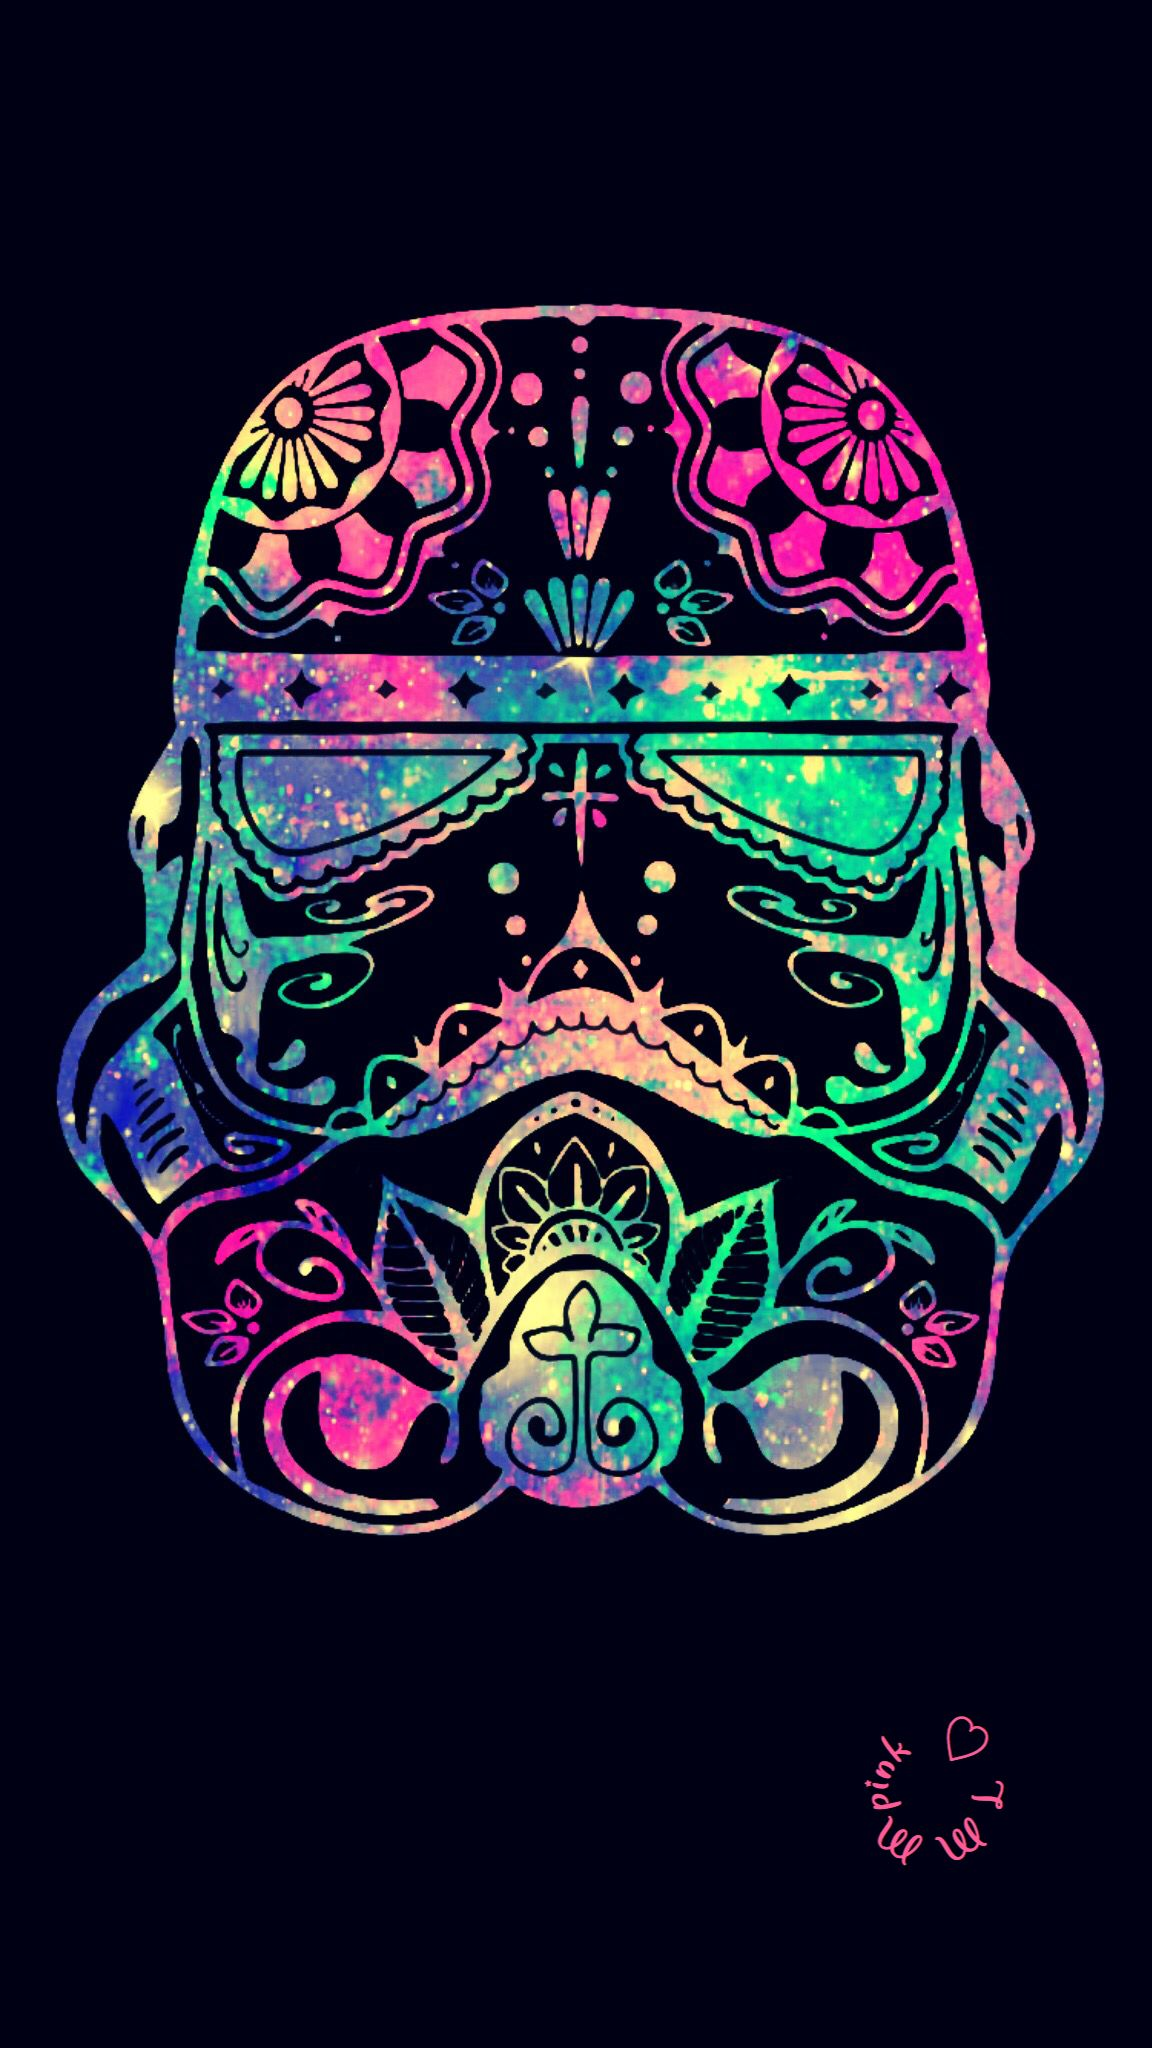 Neon Storm Trooper Galaxy Wallpaper Androidwallpaper Iphonewallpaper Wallpaper Galaxy Star Wars Wallpaper Iphone Star Wars Wallpaper Picture Collage Wall